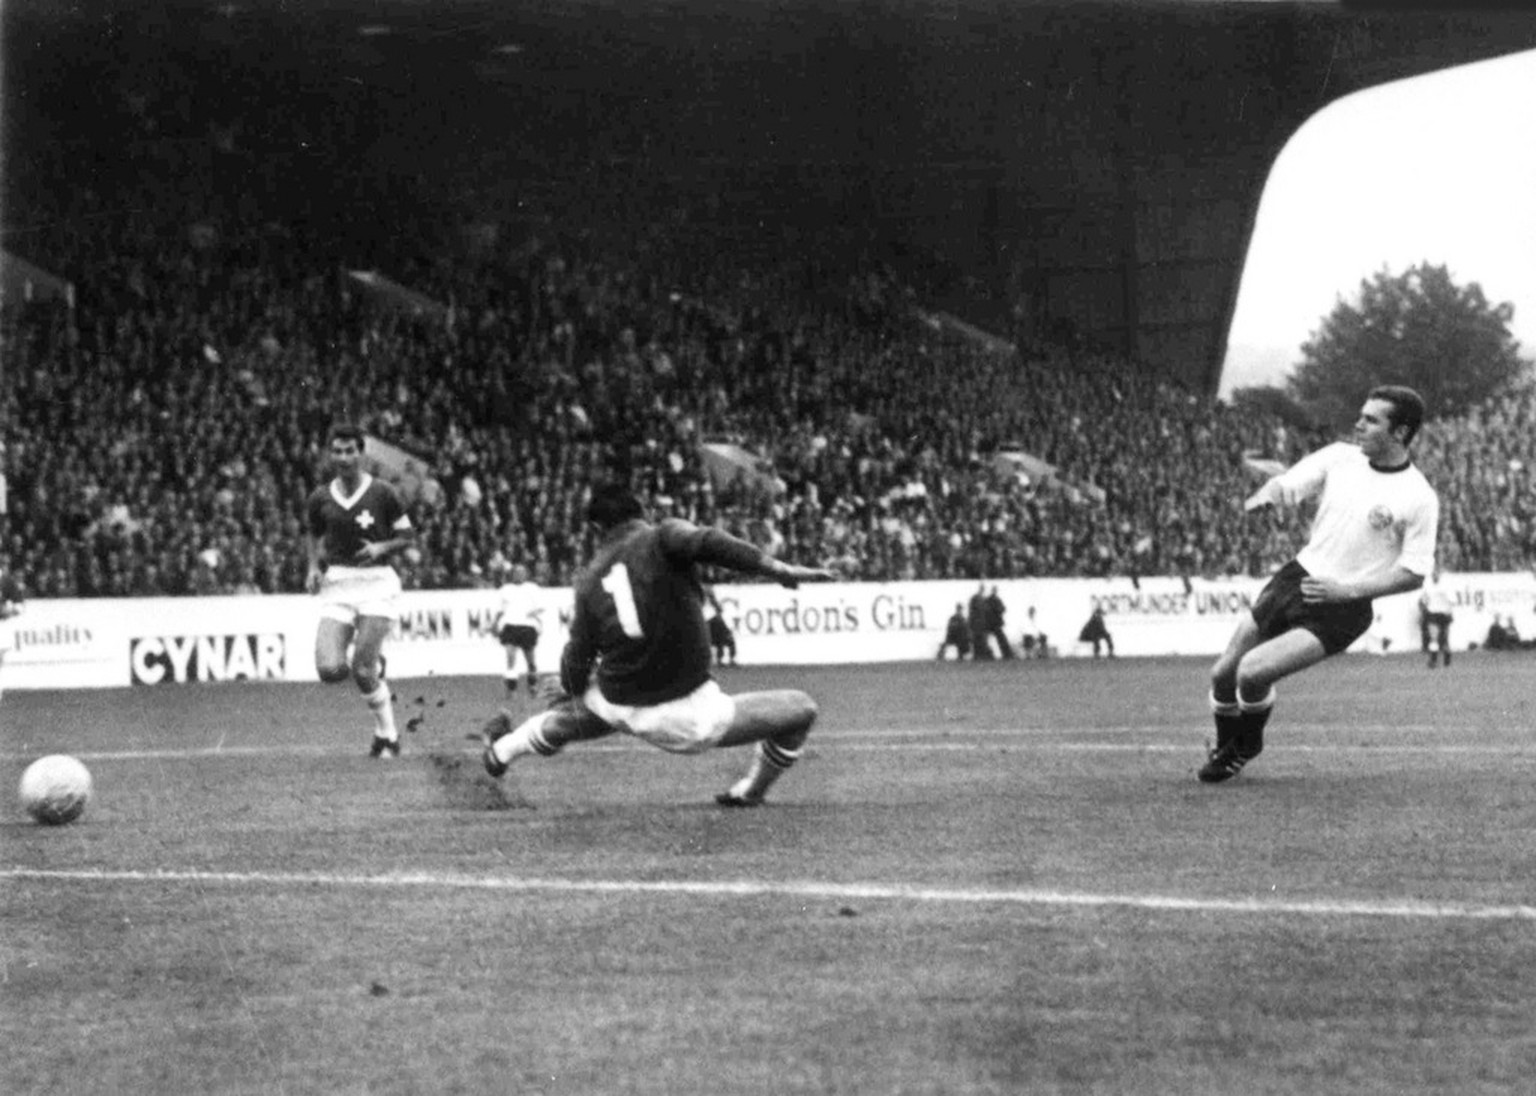 West Germany's Franz Beckenbauer, right, scores his teams fourth goal against Switzerland in the Football World Cup match at Hillsborough Stadium, Sheffield, on July 12, 1966. Swiss goalkeeper Charles Elsener attempts to stop the ball. West Germany defeated Switzerland 5-0. (AP Photo/Bippa)